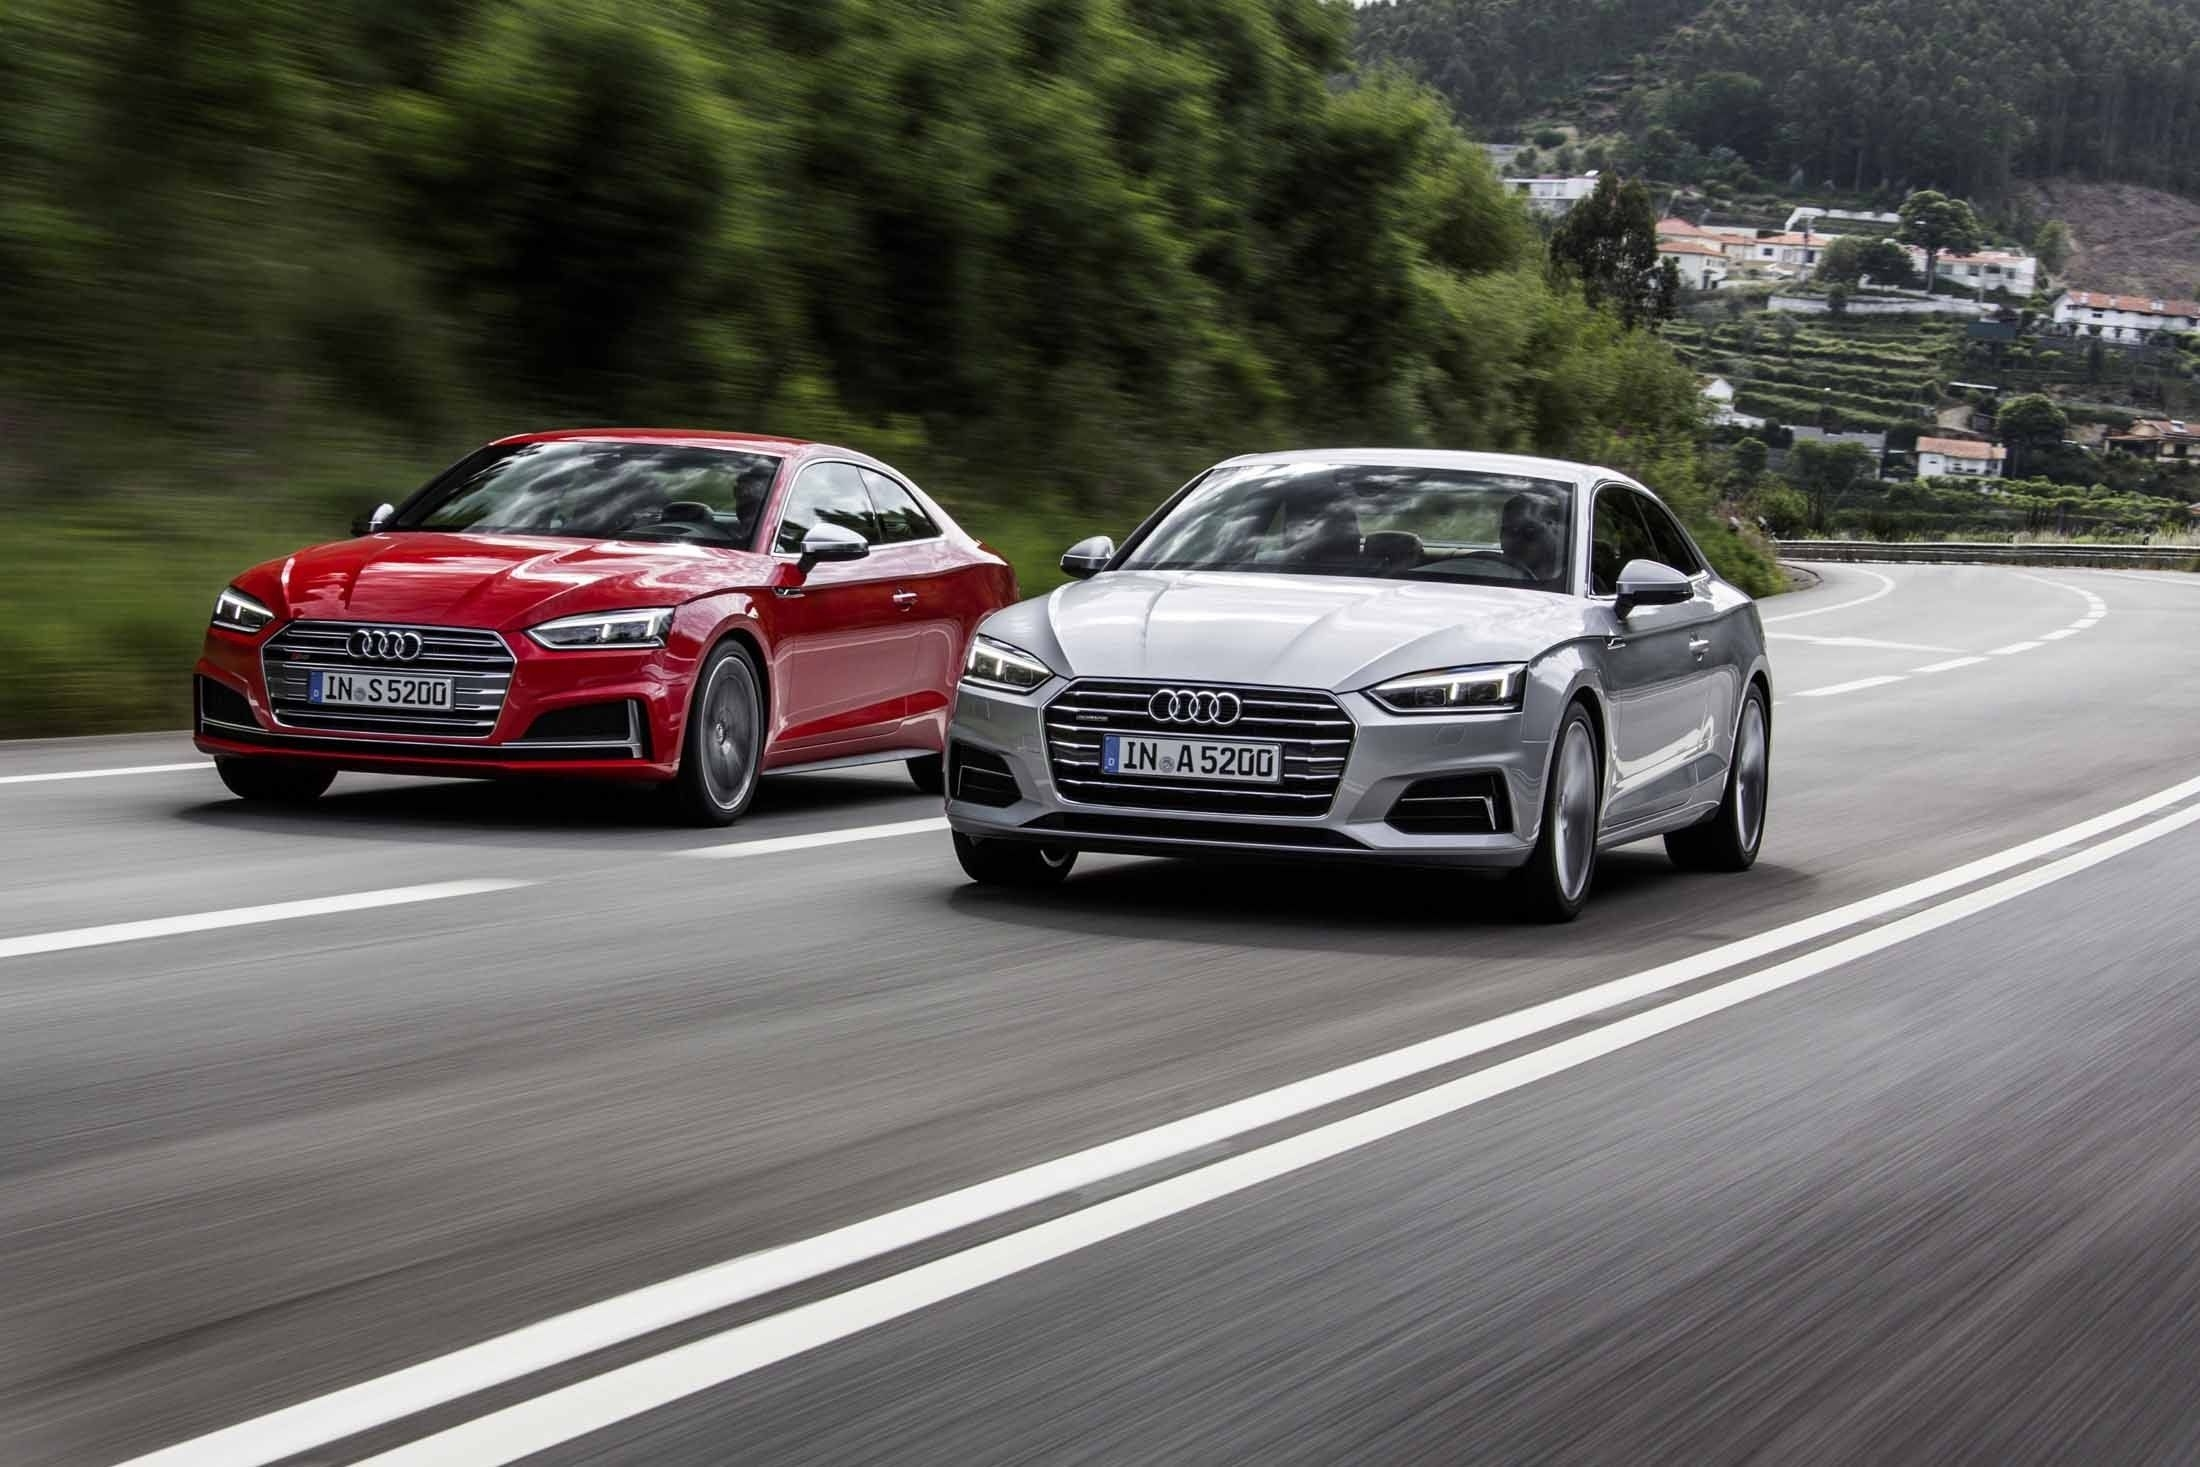 81 New 2020 Audi Rs5 Tdi Overview